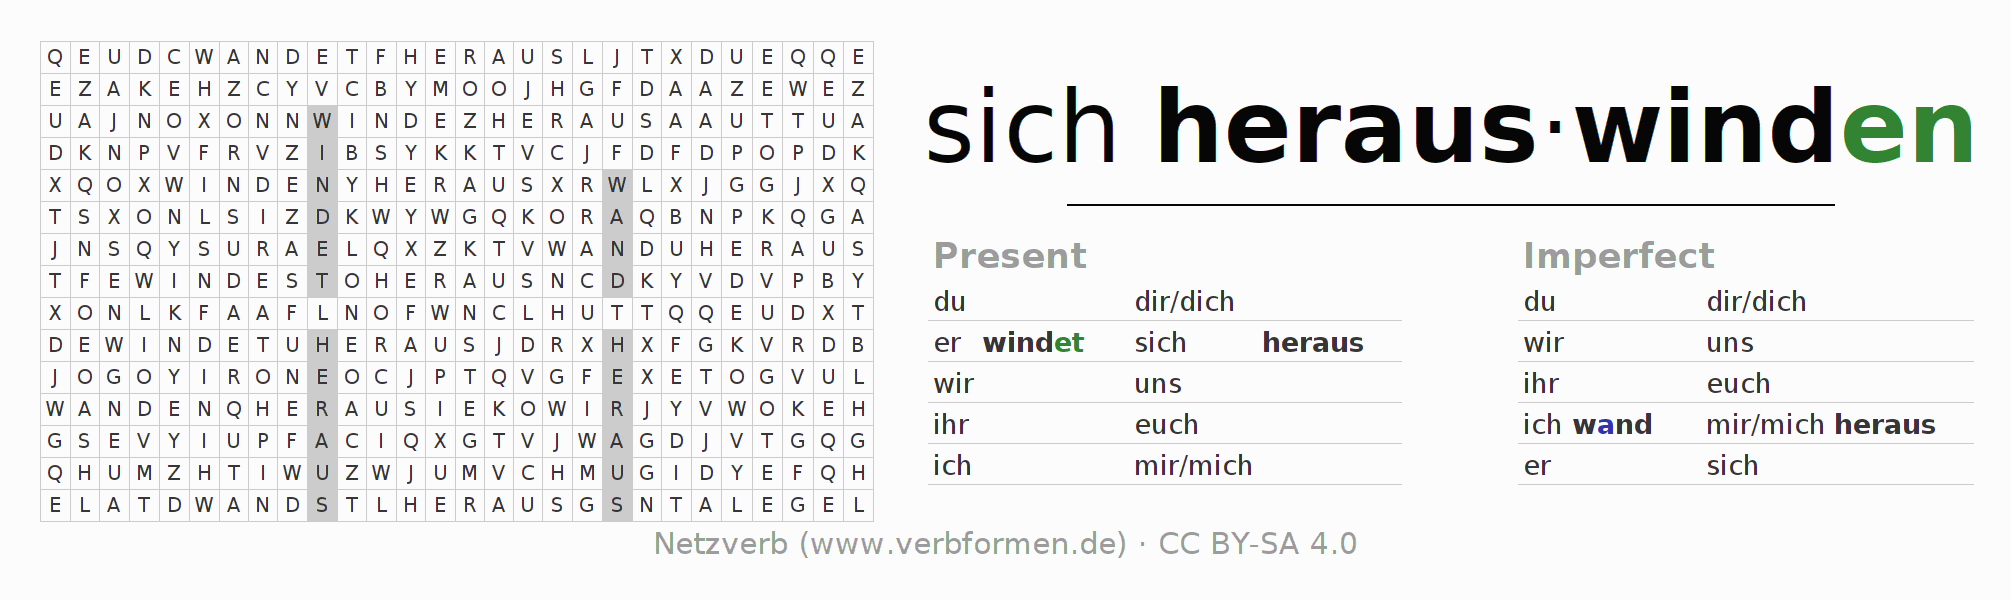 Word search puzzle for the conjugation of the verb sich herauswinden